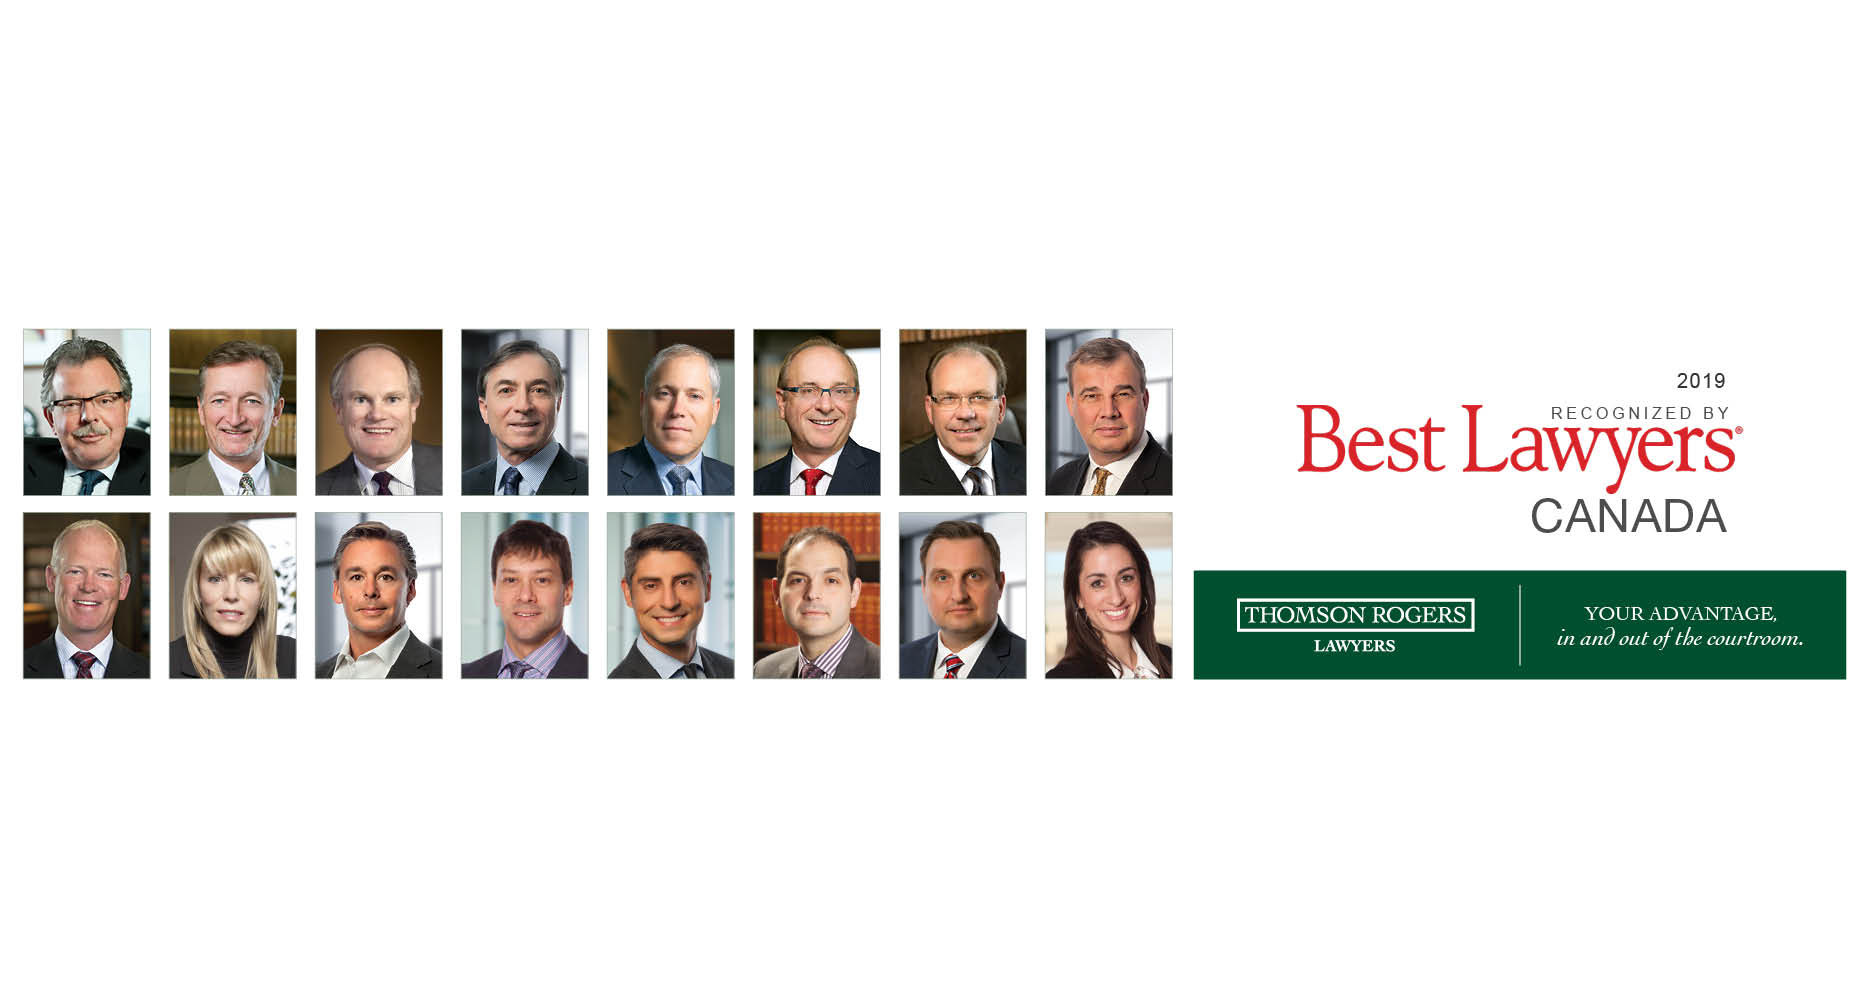 best lawyers in canada 2019 - 13th edition